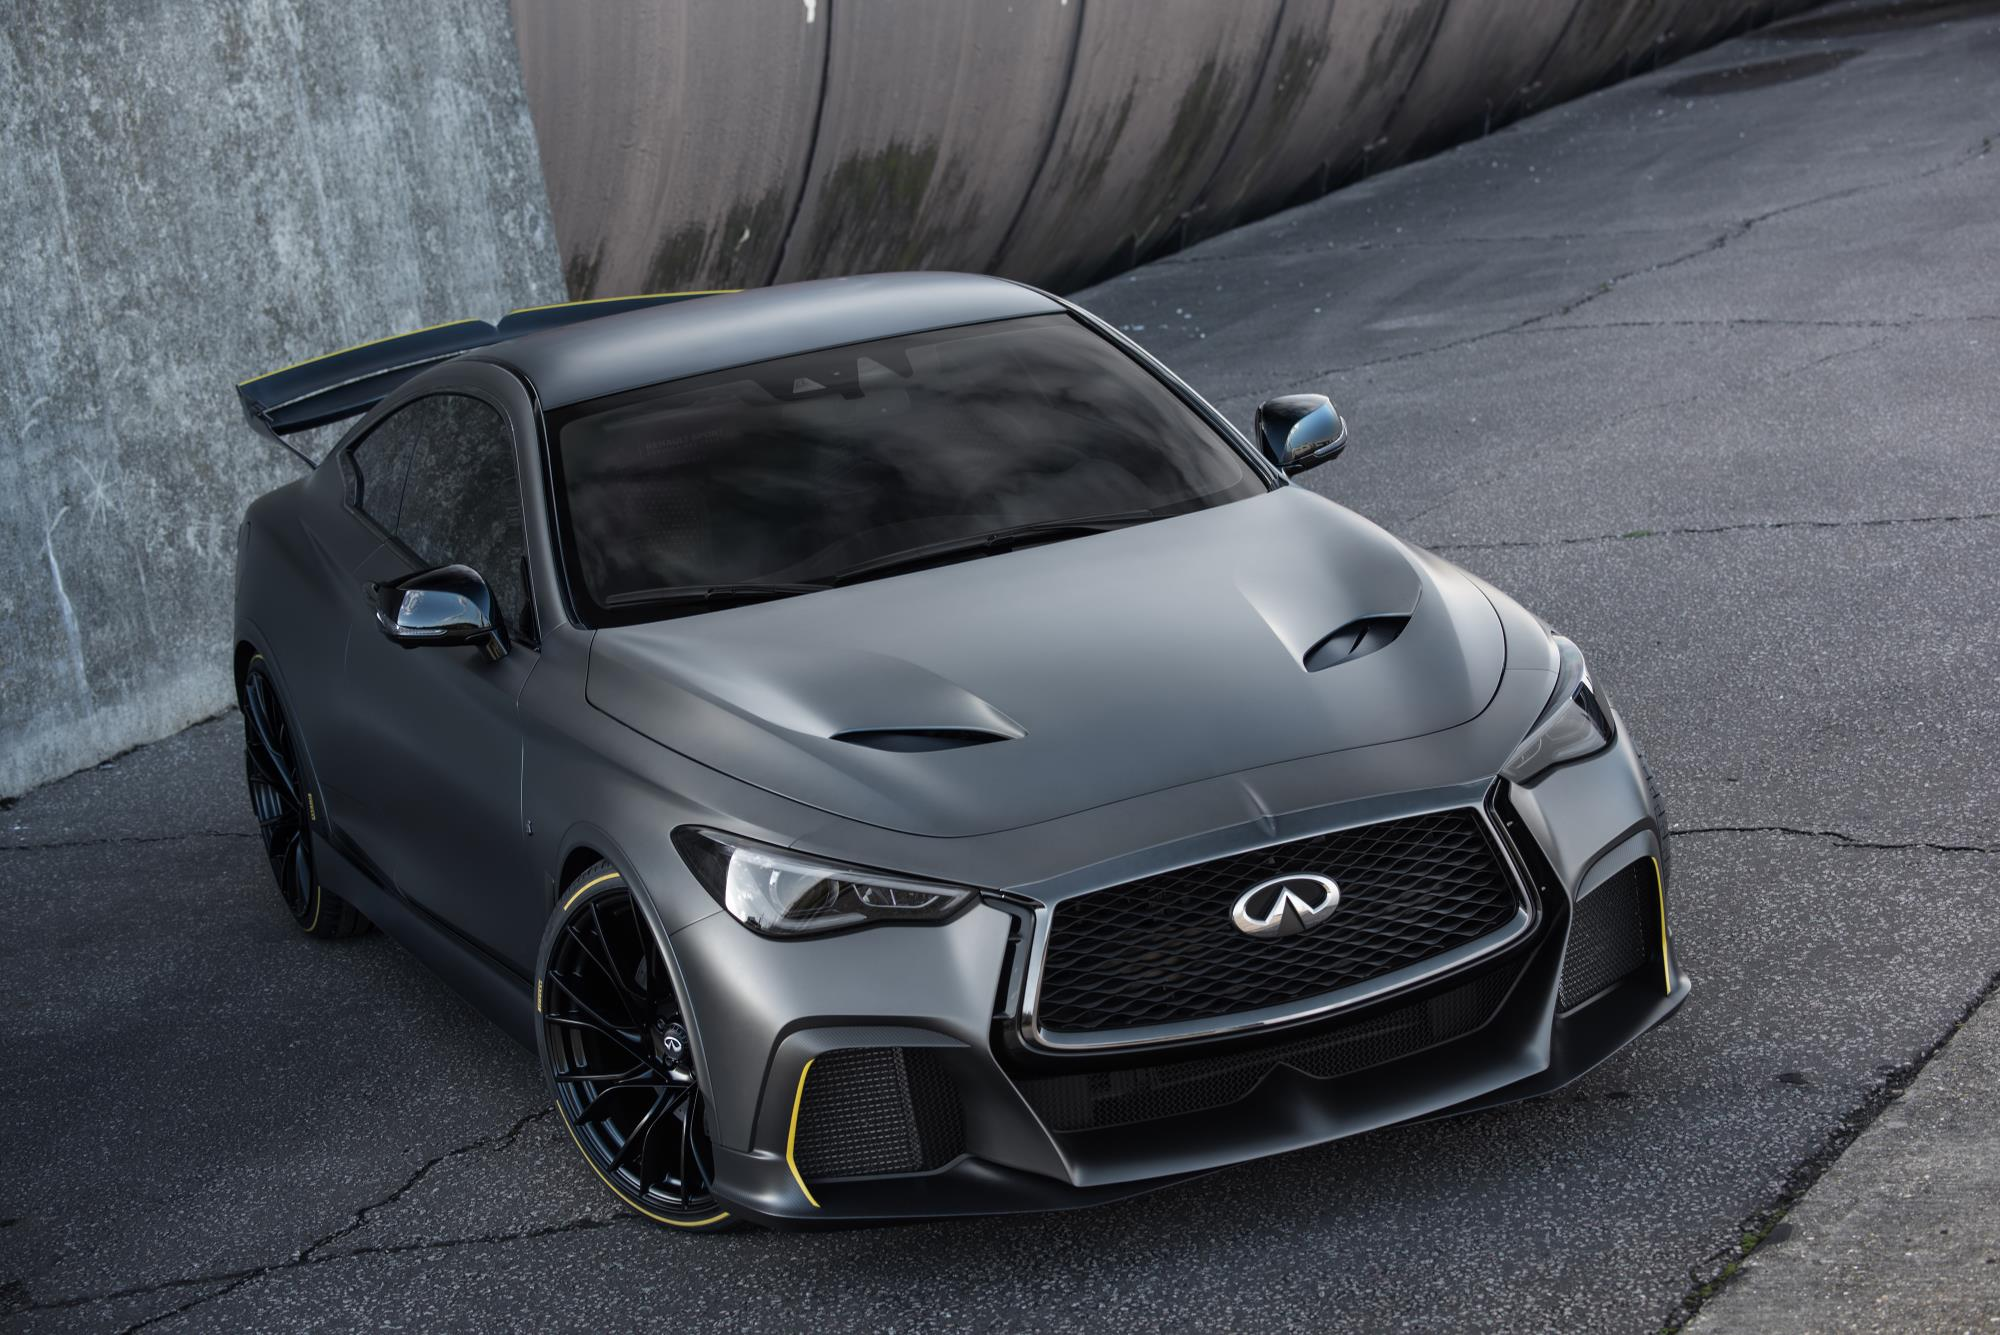 The INFINITI Project Black S prototype